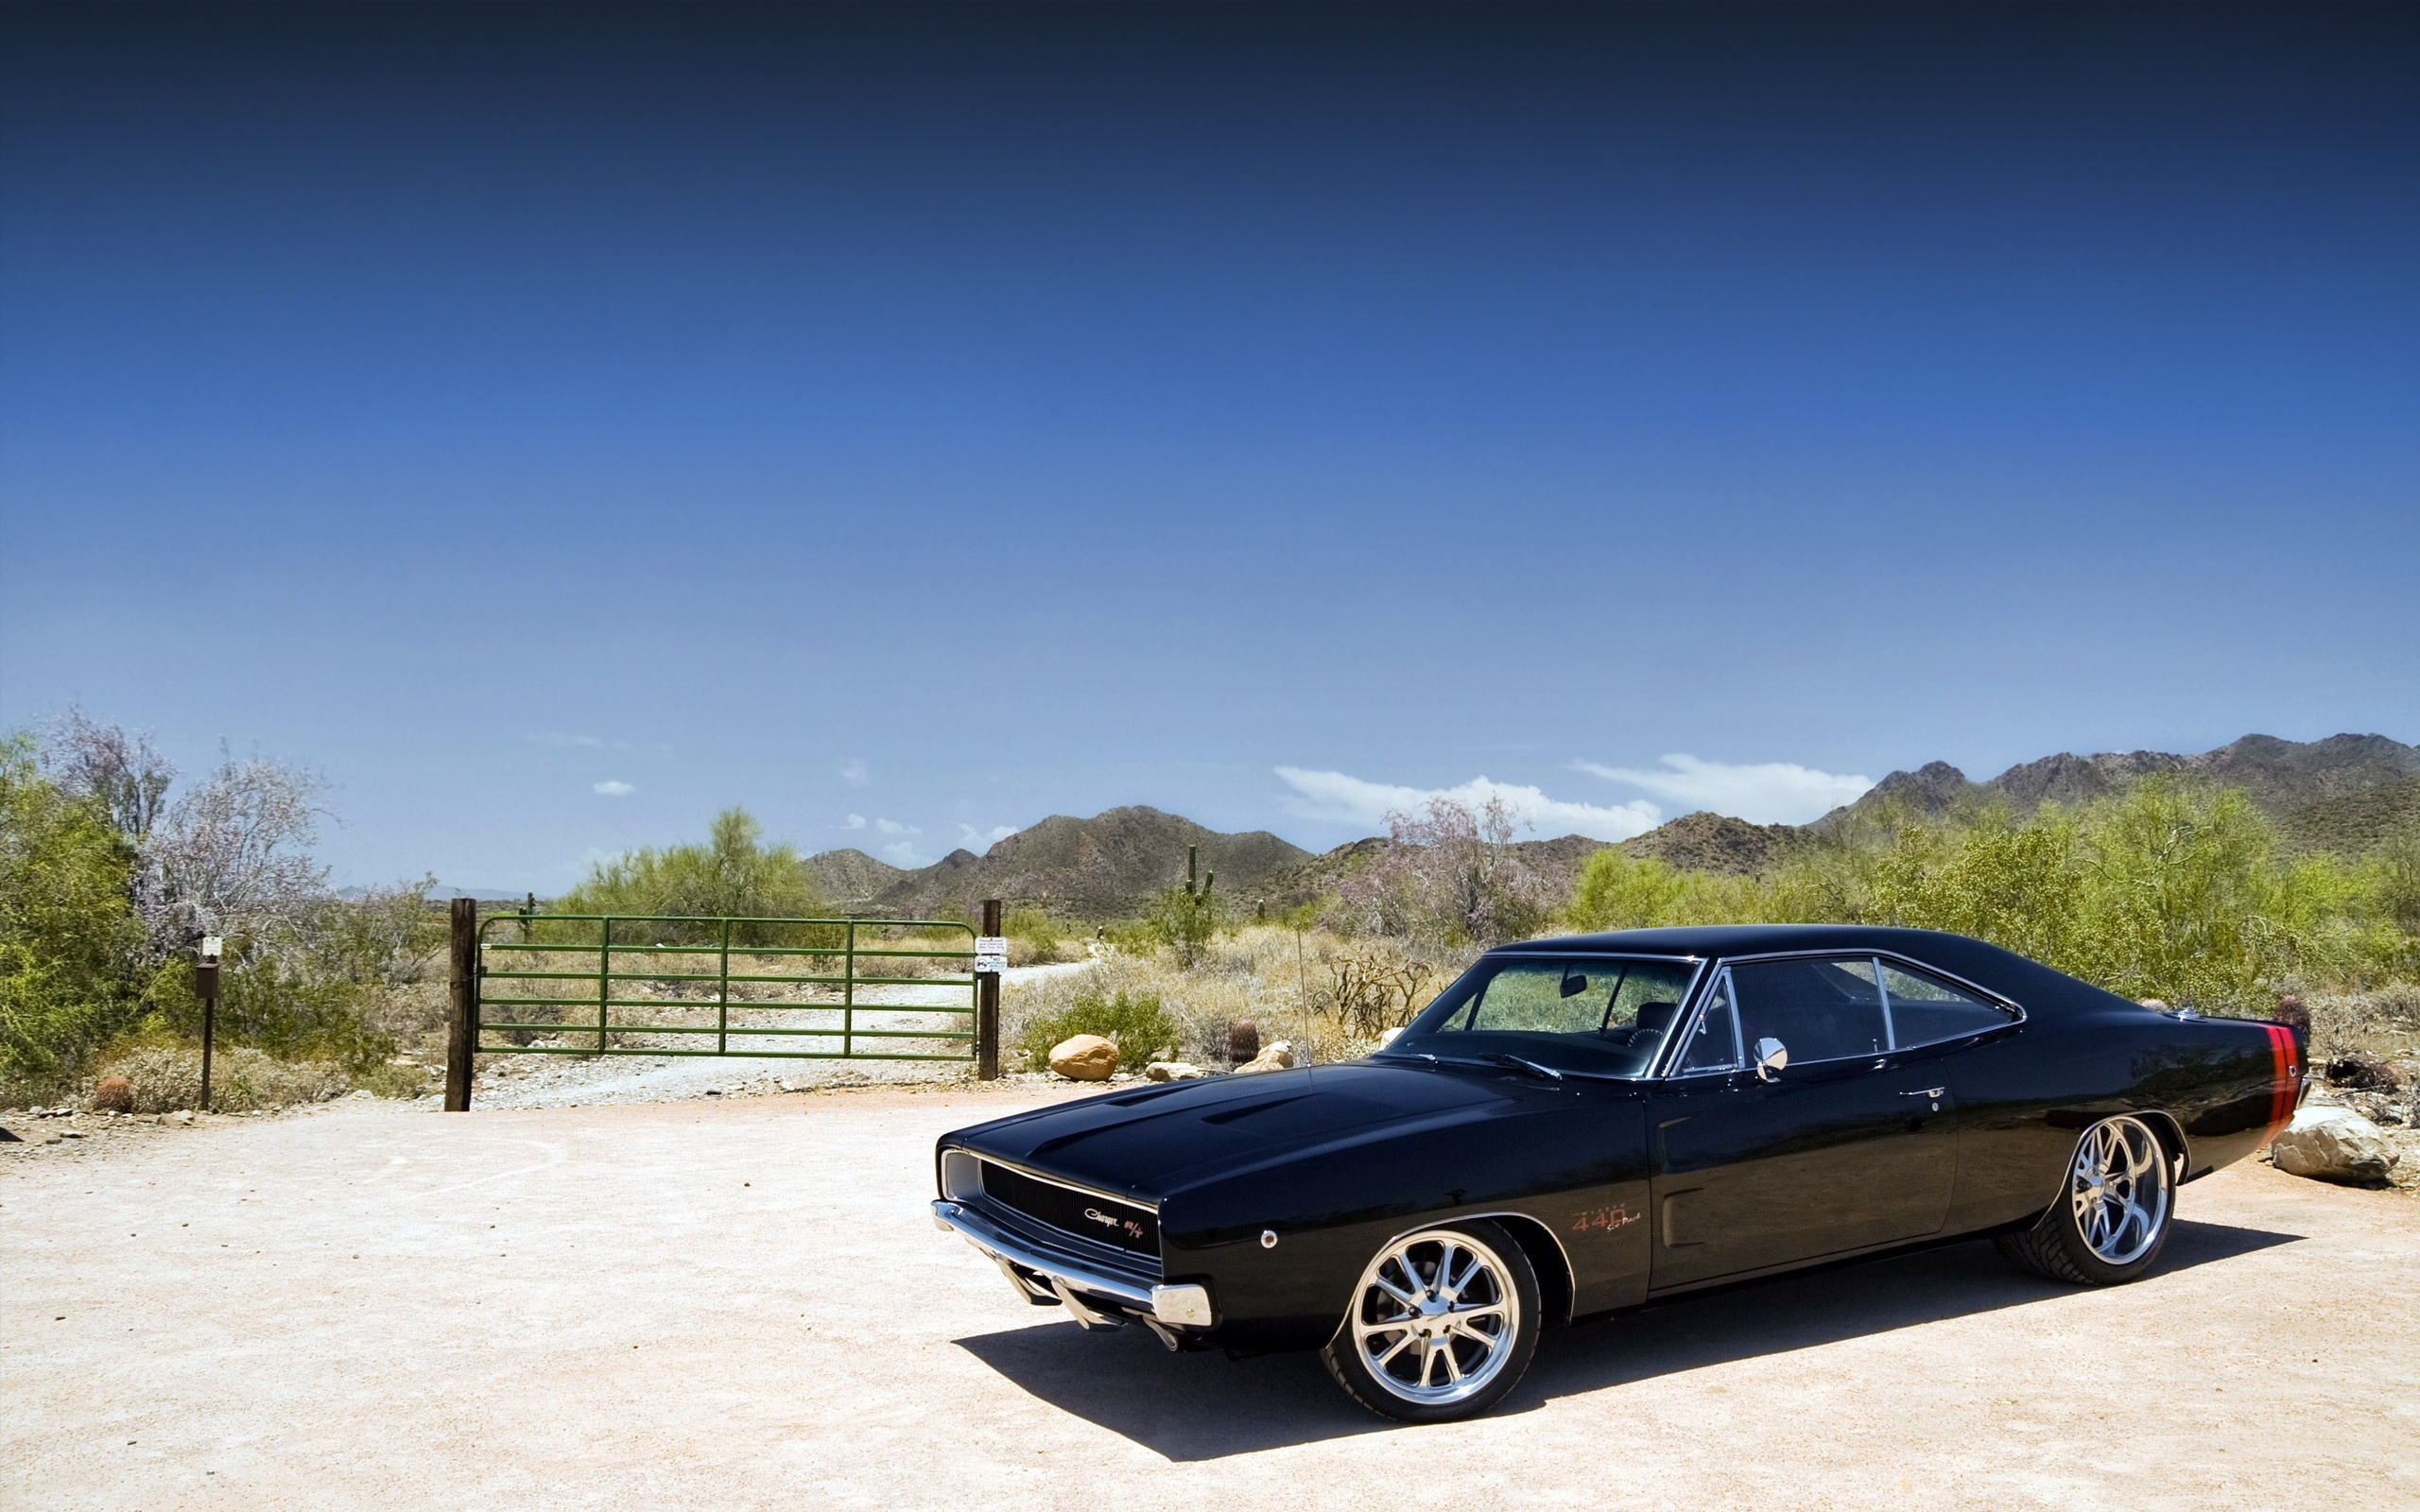 Wallpaper Dodge charger rt Dodge charger dodge muscle car desktop 2560x1600